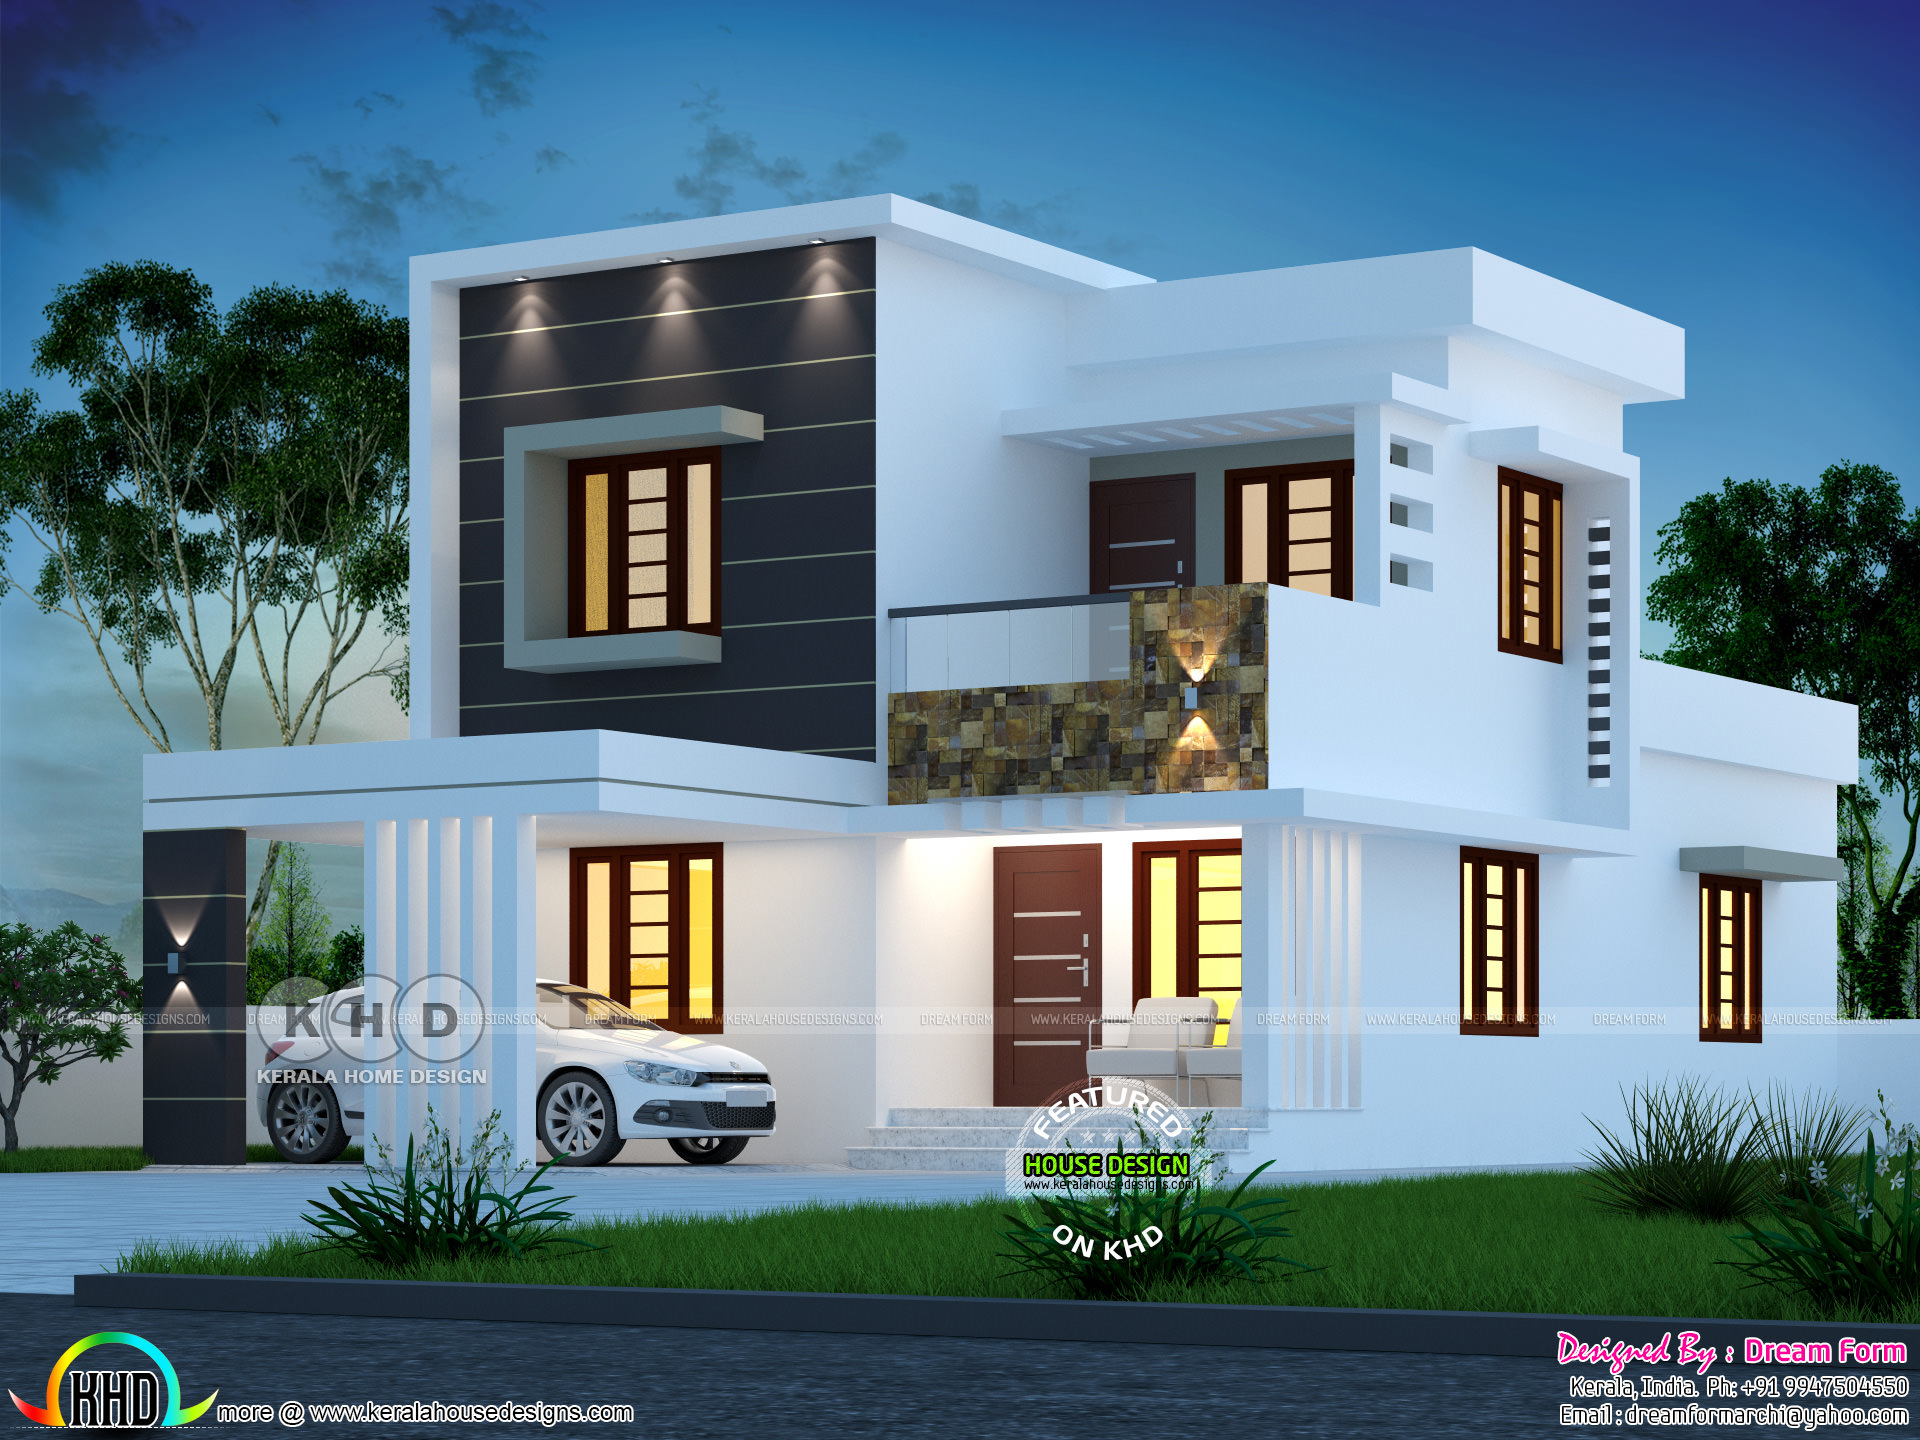 1580 sq ft 4 bedroom modern house plan kerala home 16216 | dream home flat roof